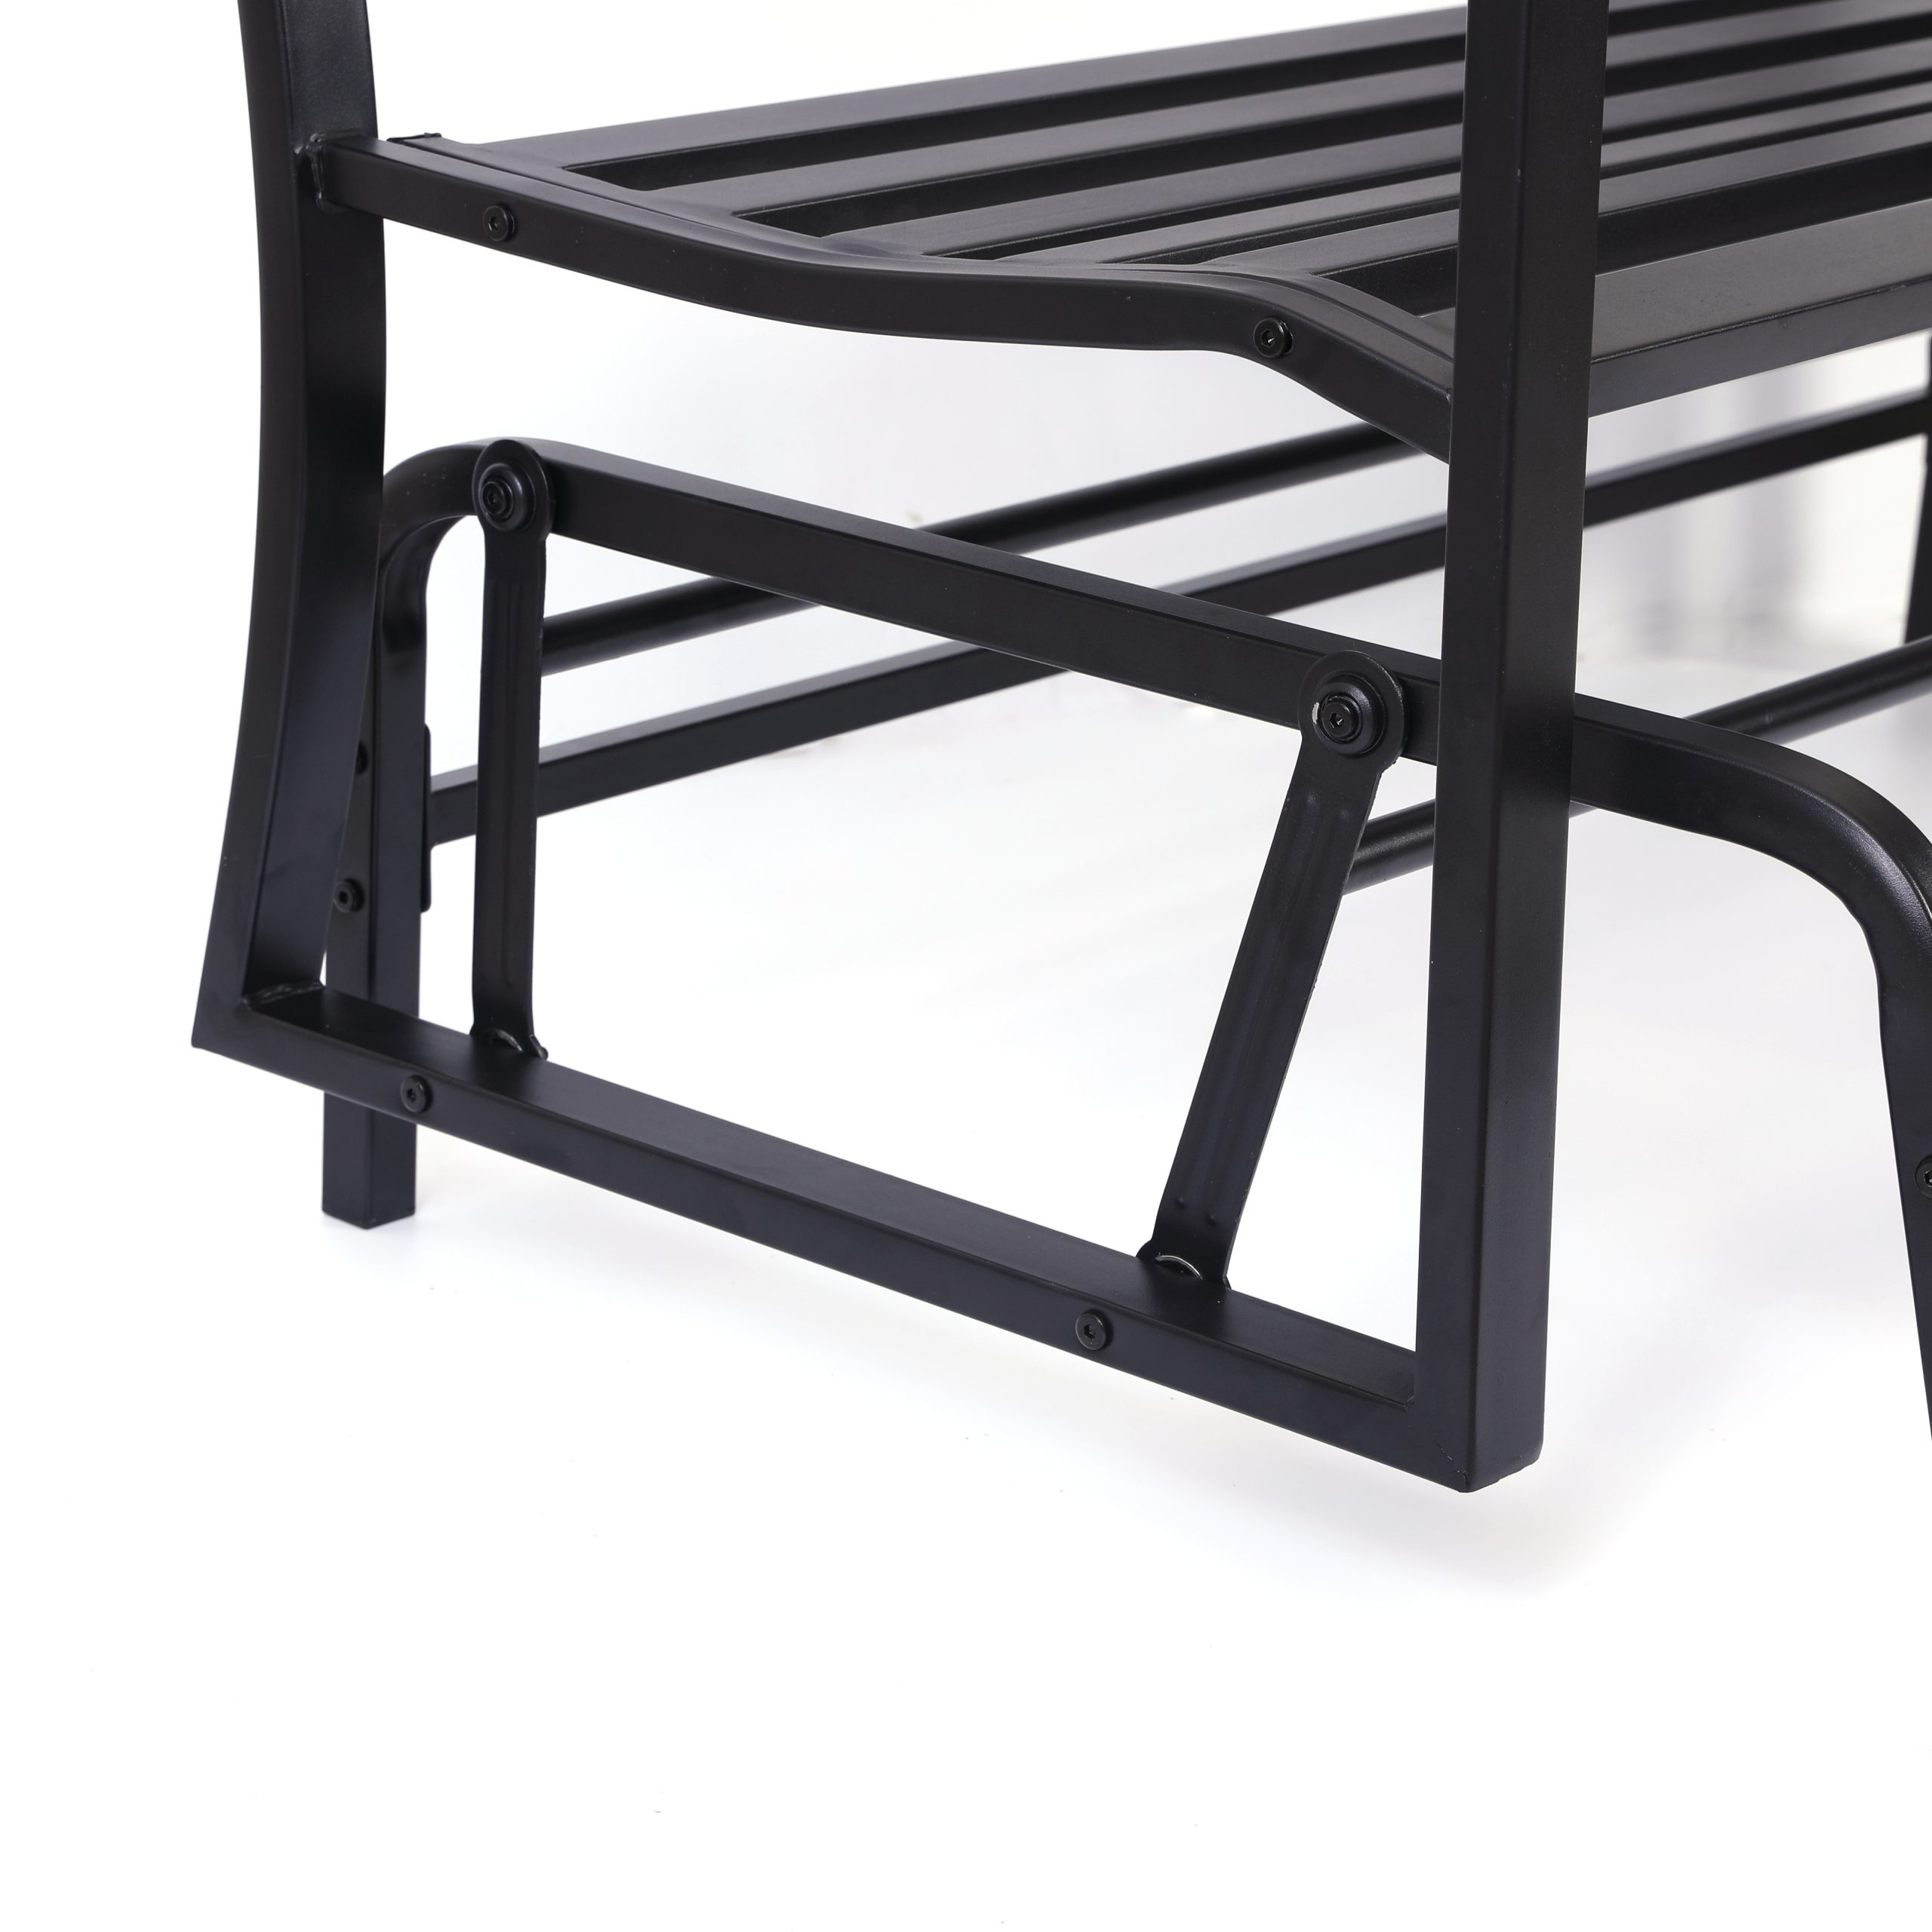 "Details About Gardenised Black Steel Patio Garden Park Yard 50"" Outdoor  Swing Glider Bench Intended For Black Steel Patio Swing Glider Benches Powder Coated (Image 9 of 25)"